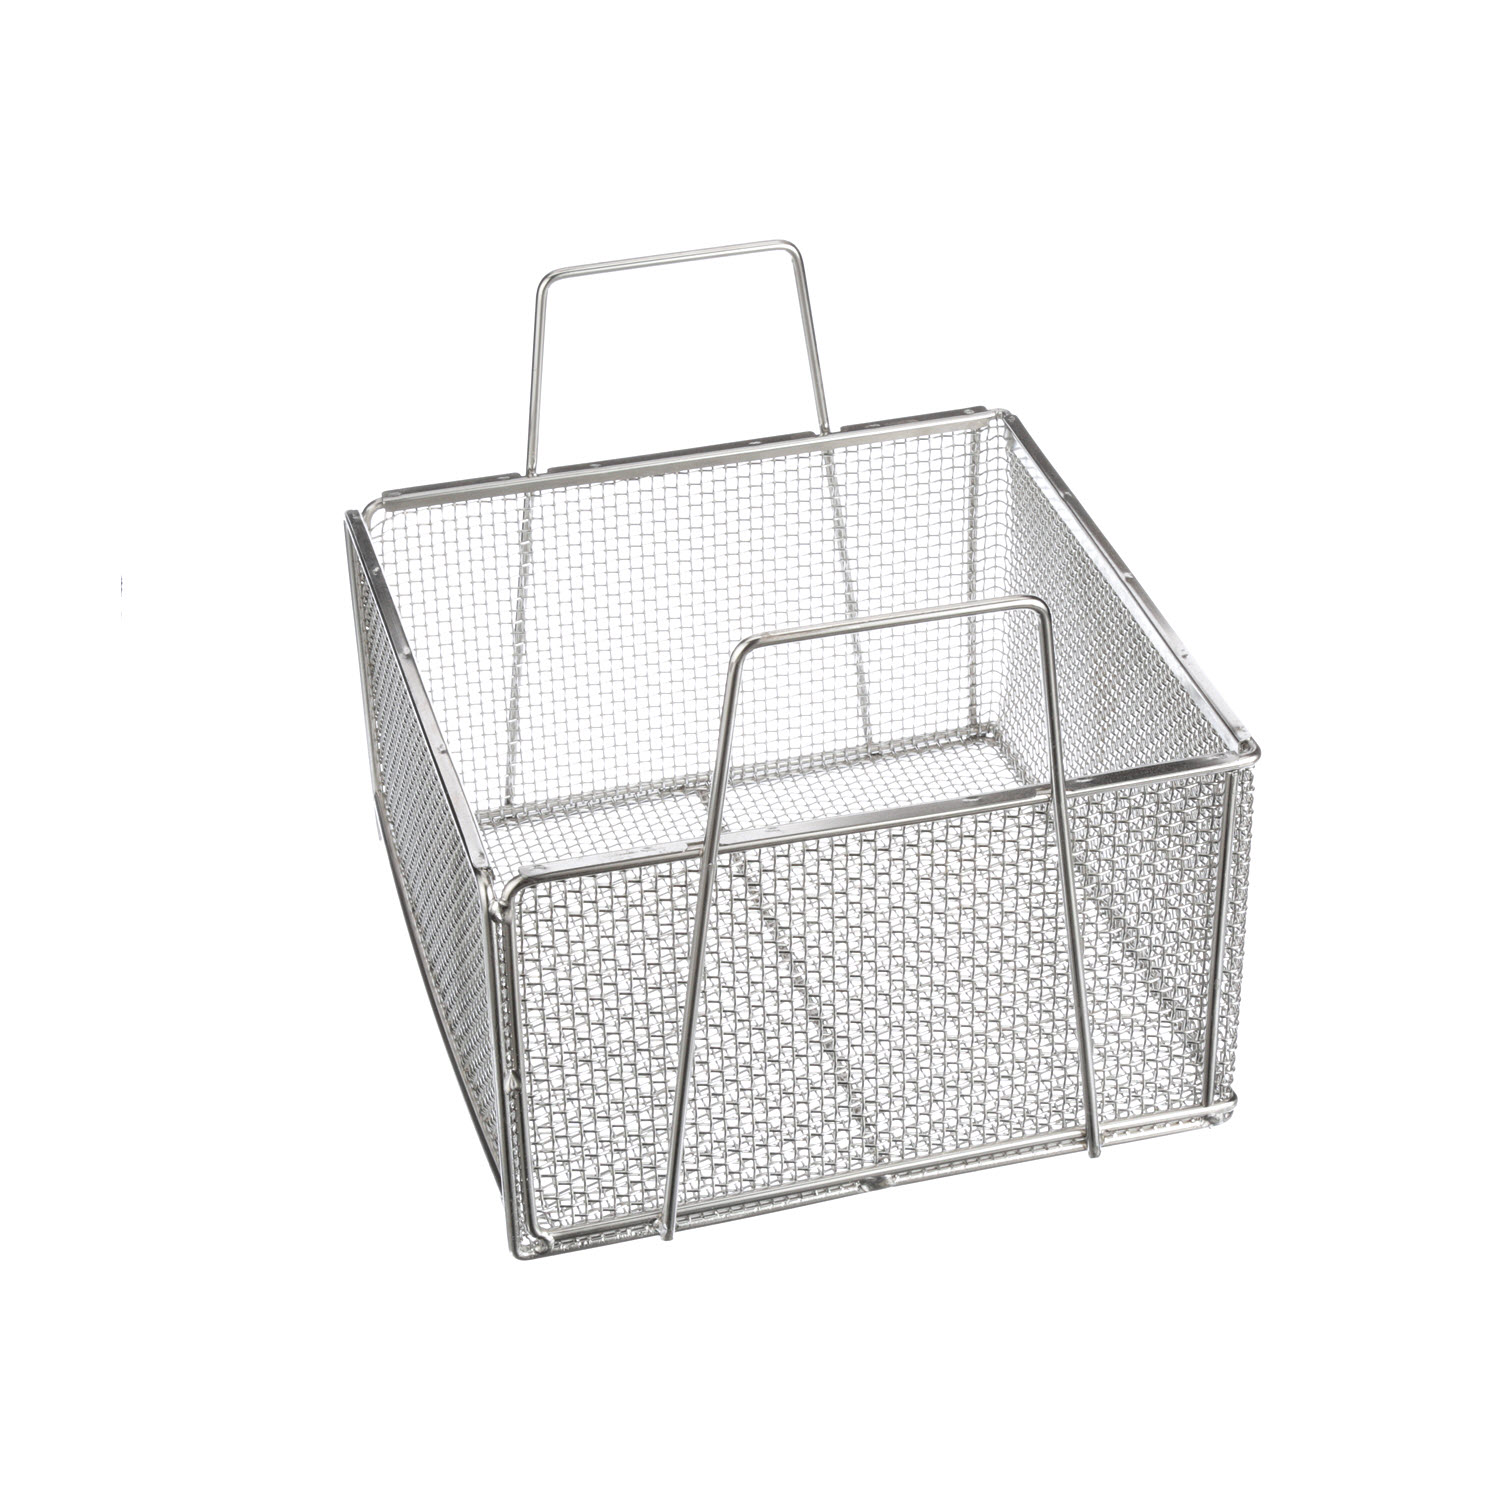 Creating a Flexible Custom Basket System Using Interchangeable Inserts